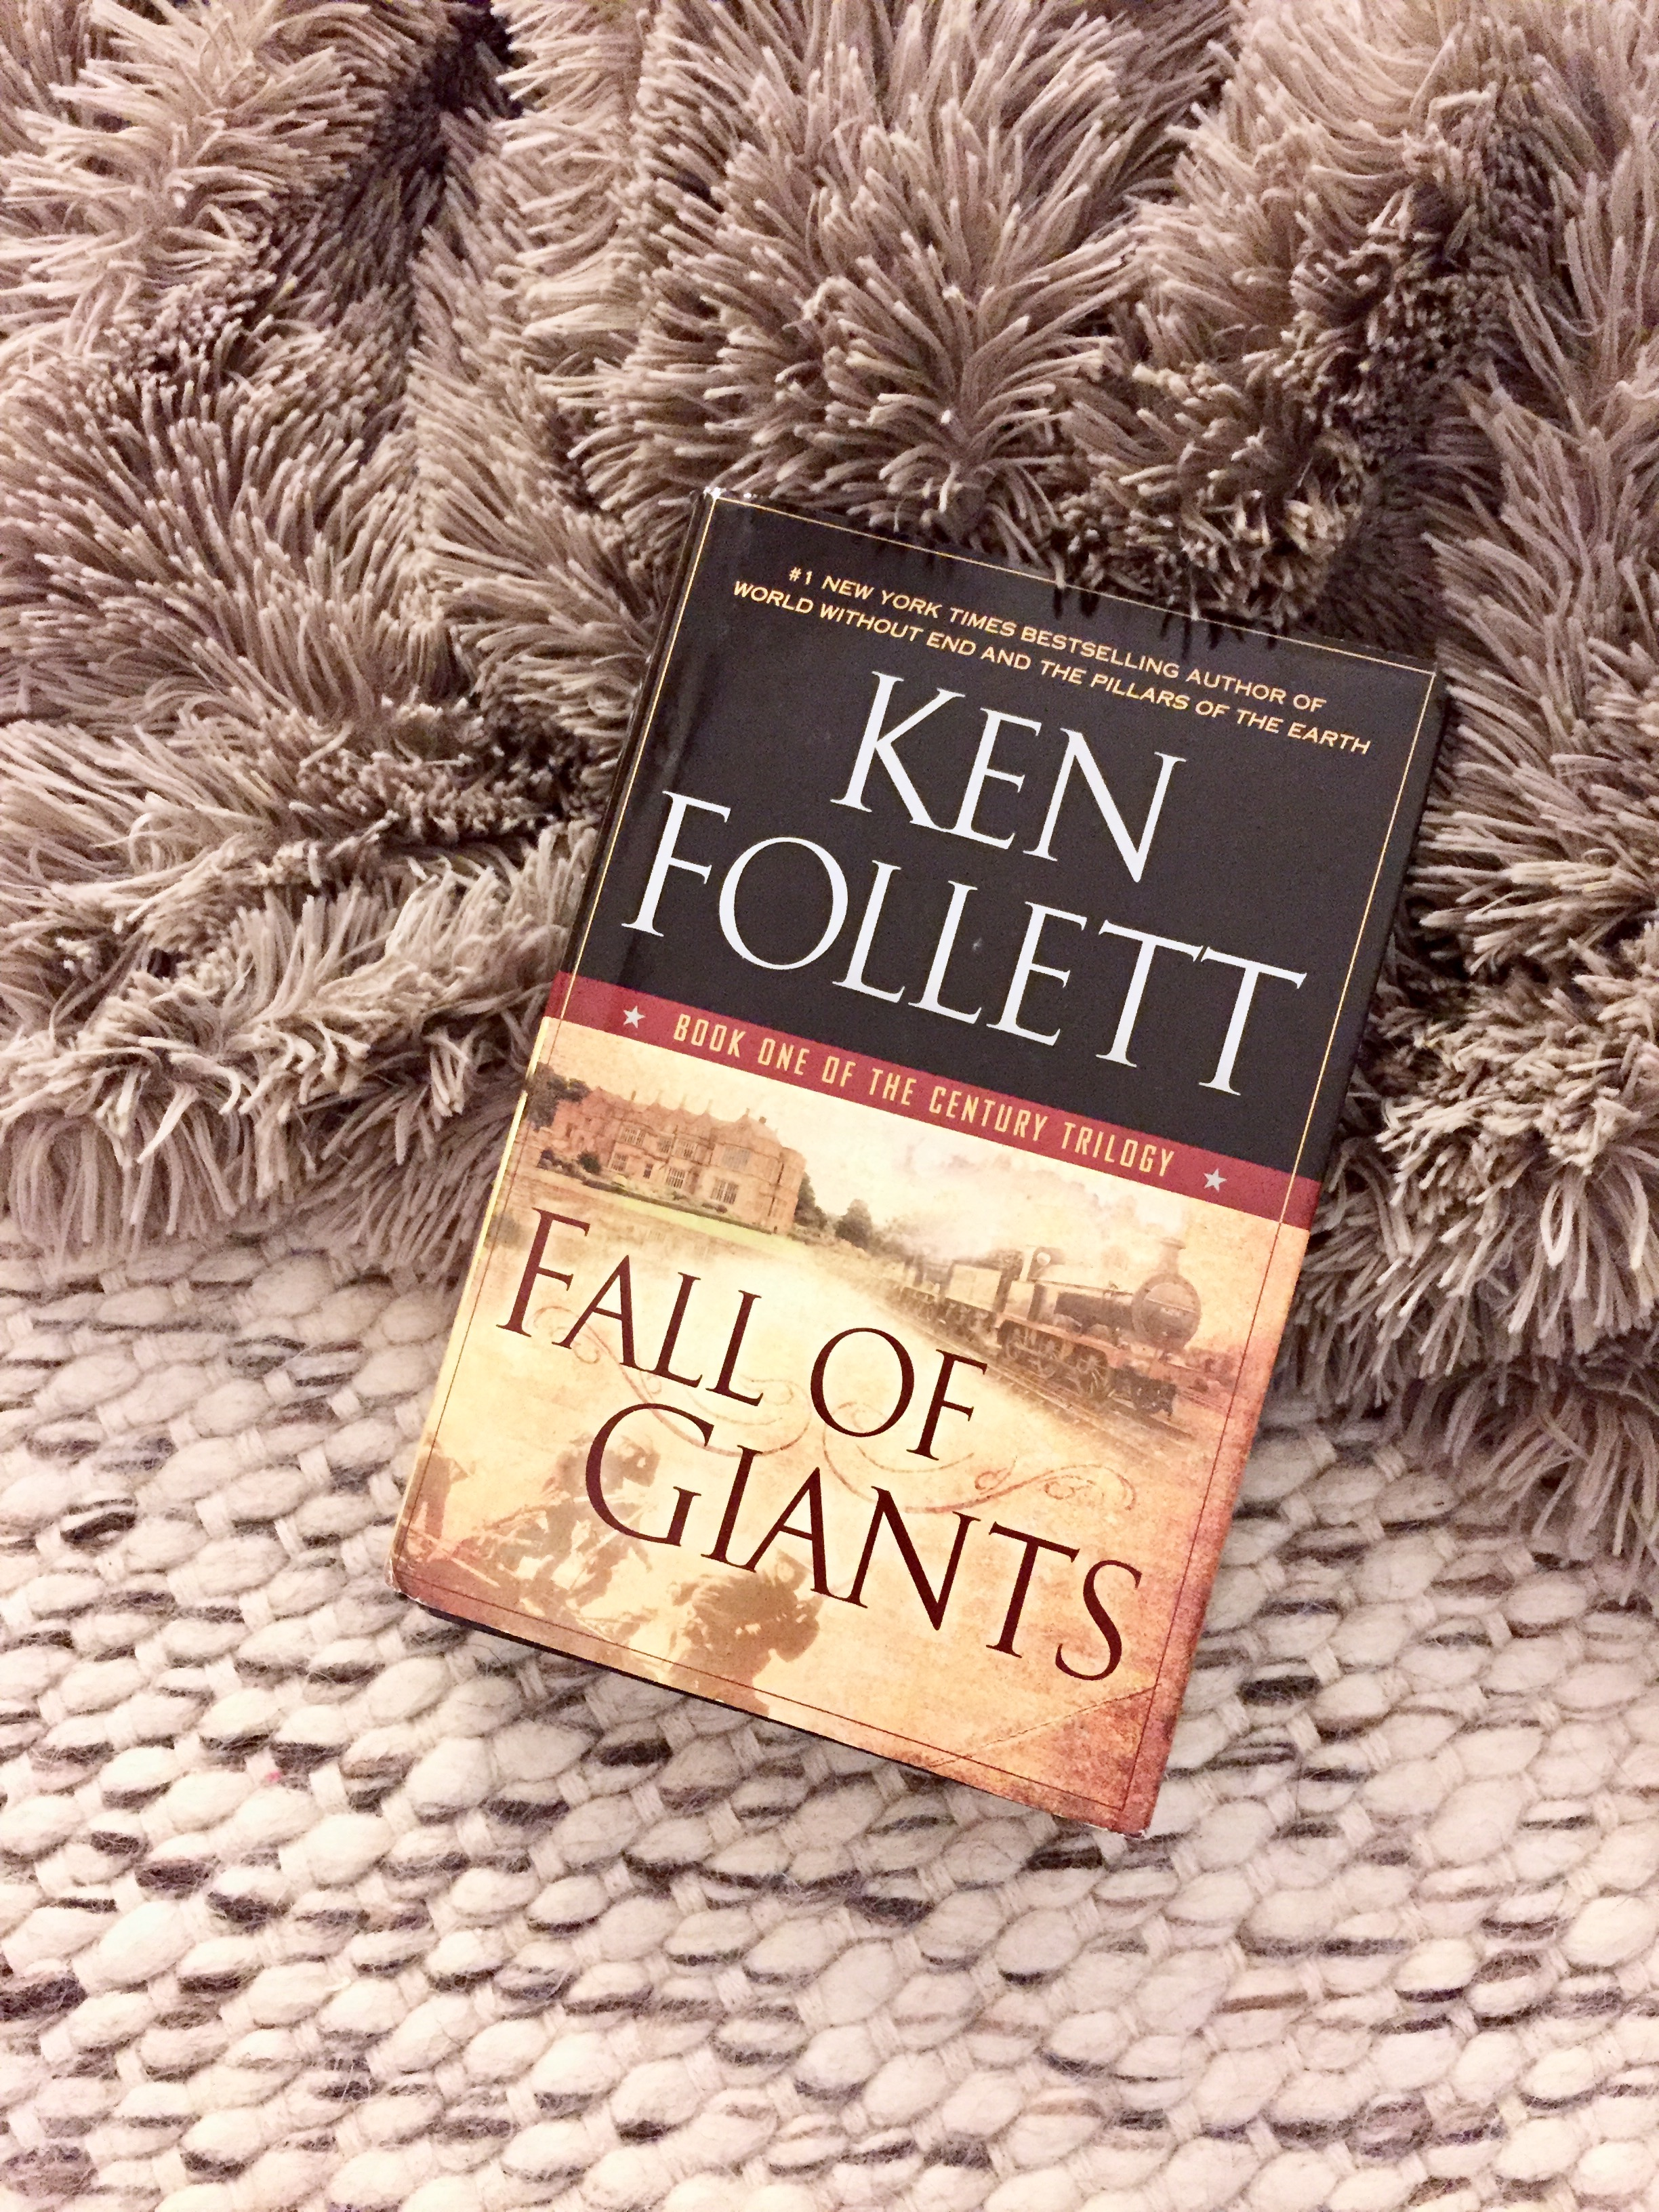 Fall of Giants by Ken Follett